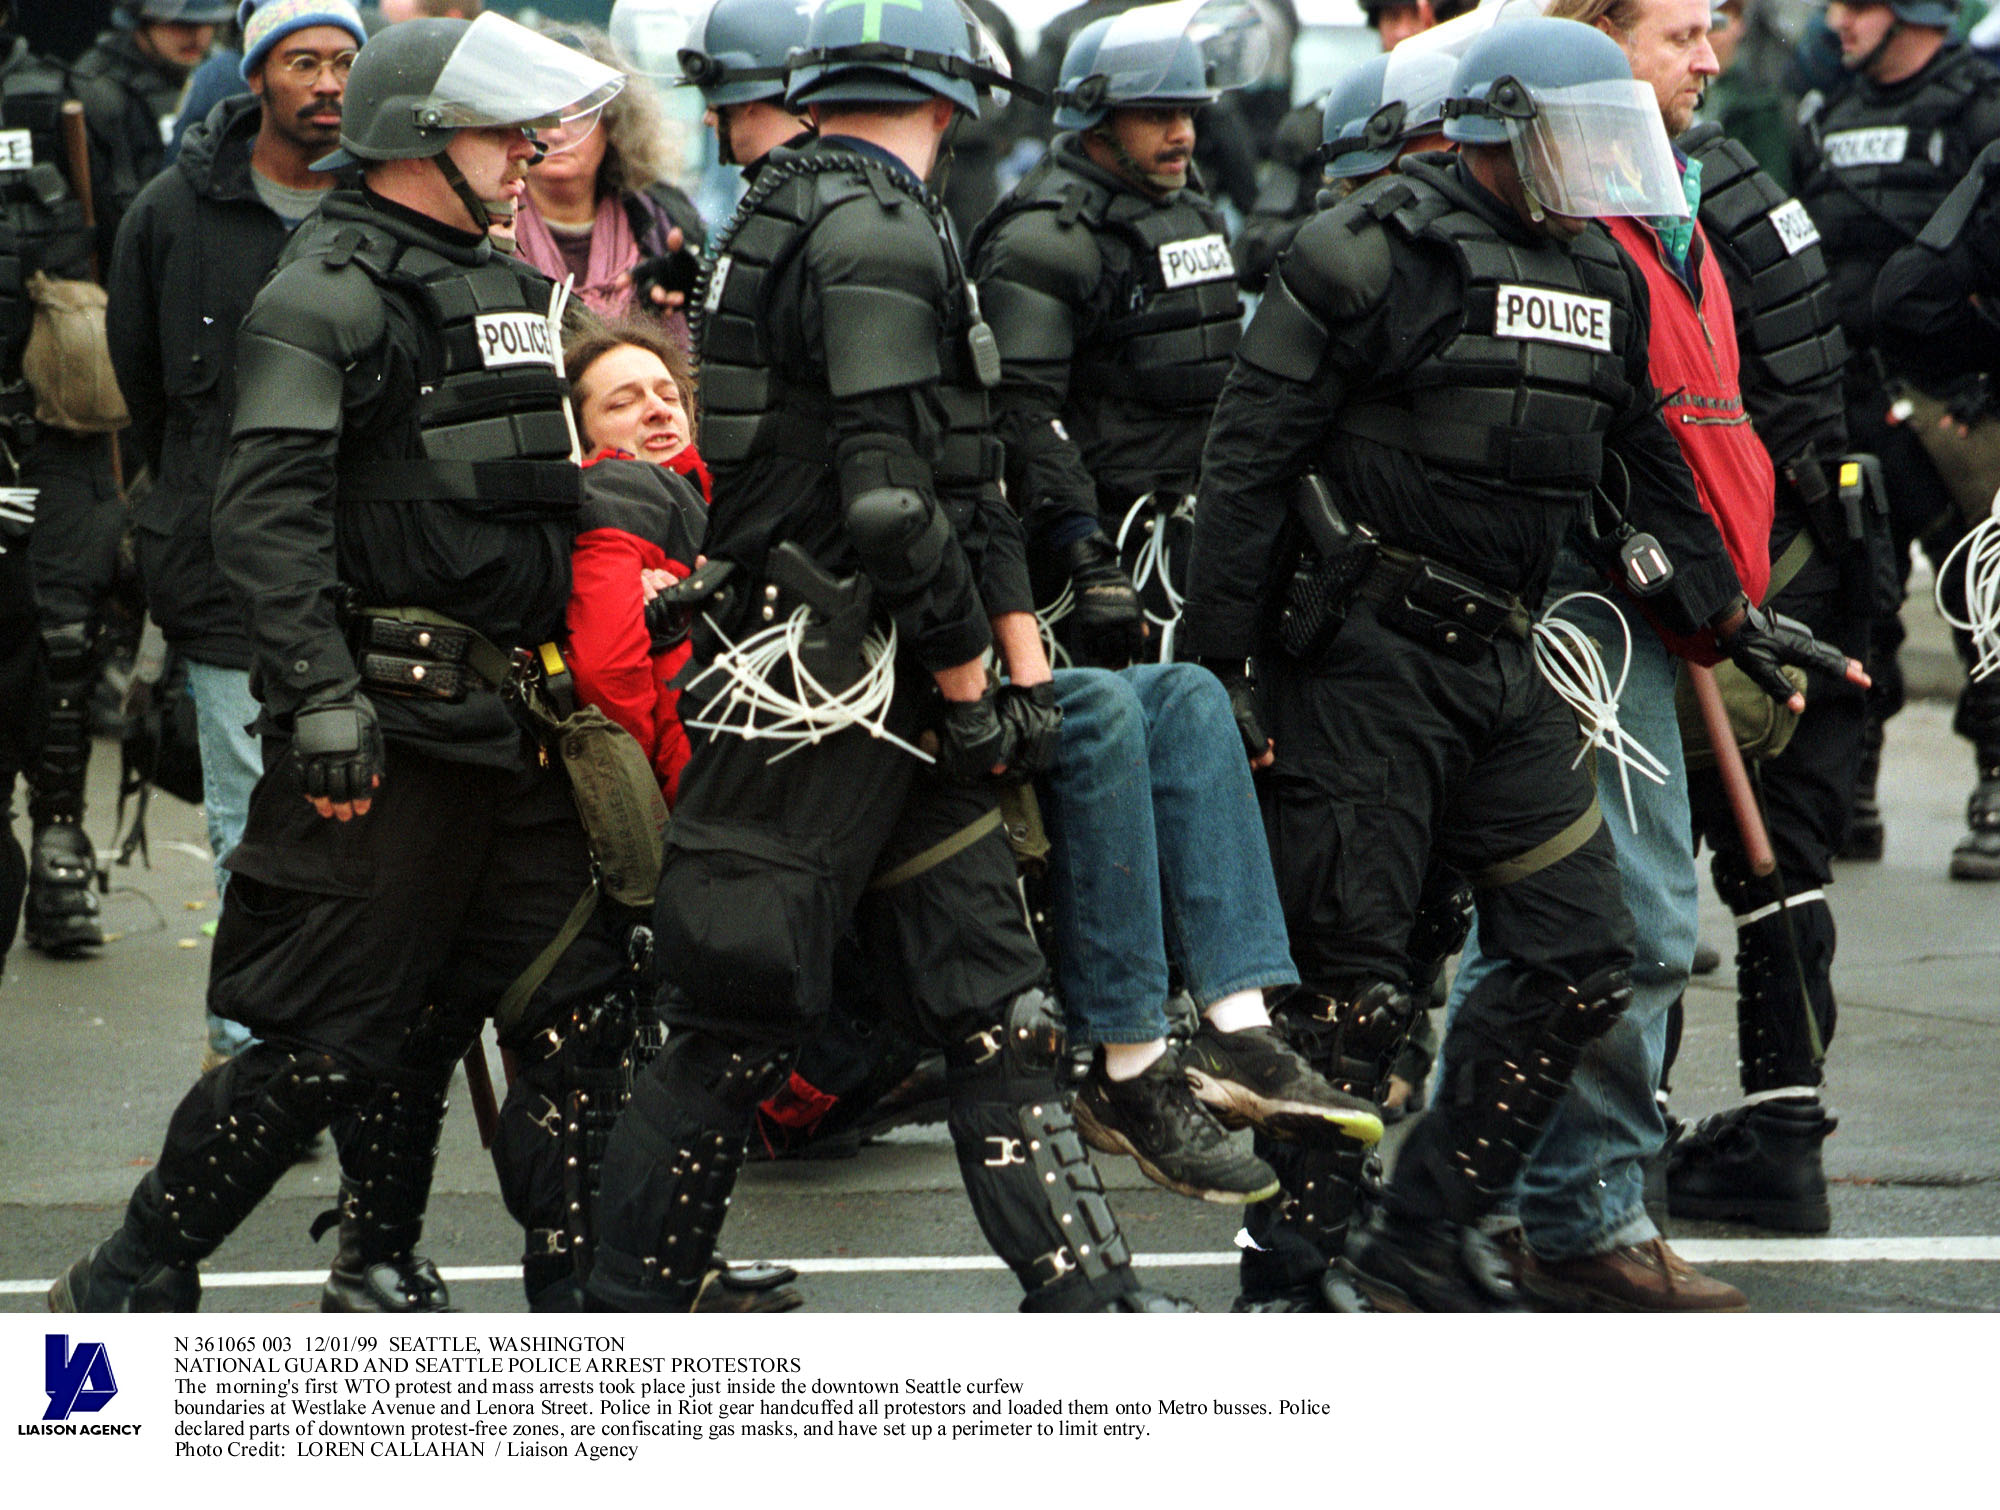 National Guard and Seattle police arrest WTO protestors , November 1999